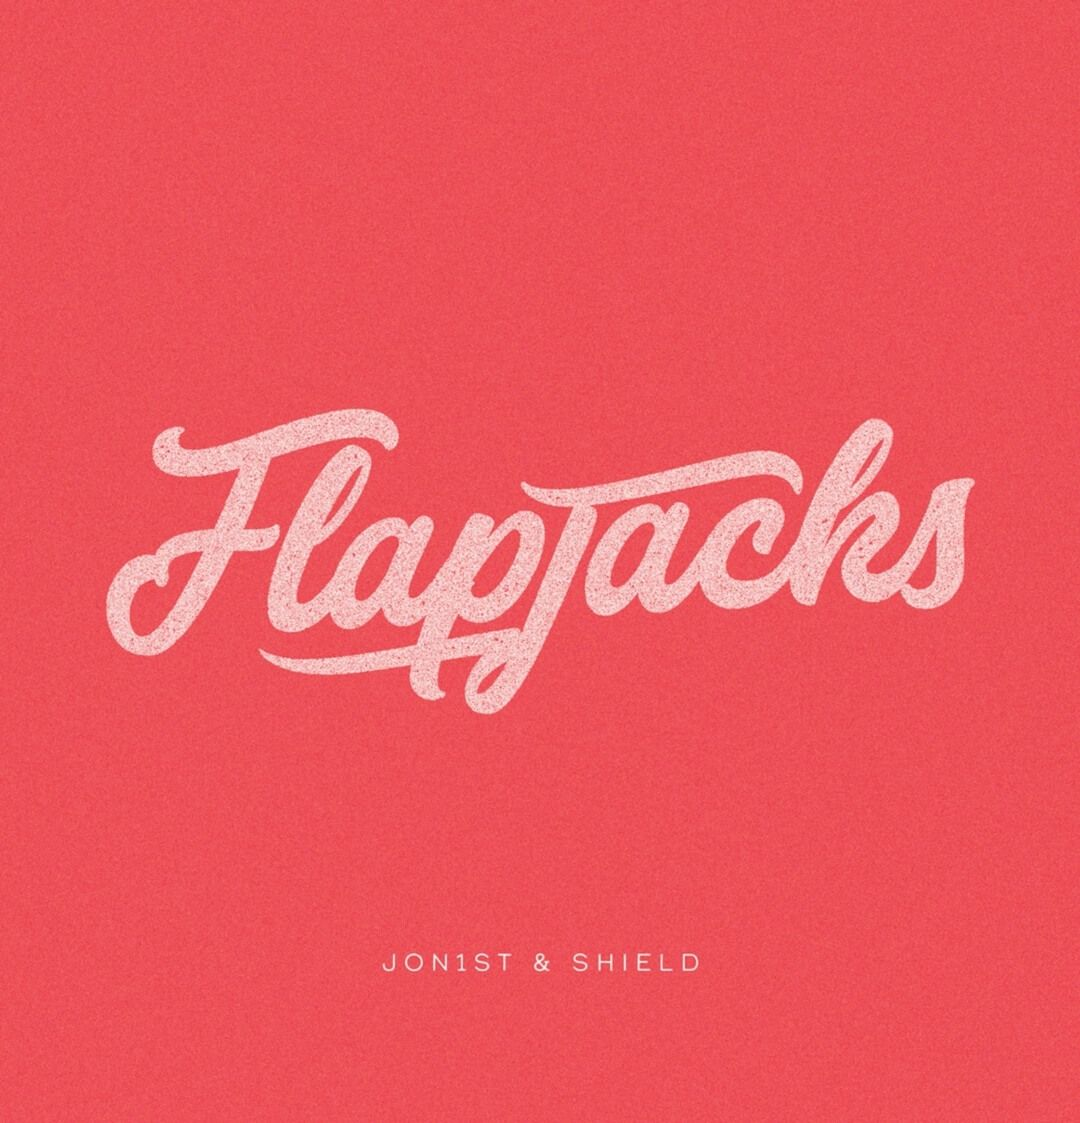 Jon1st & Shield Present Their Untouchable 'Flapjacks' EP